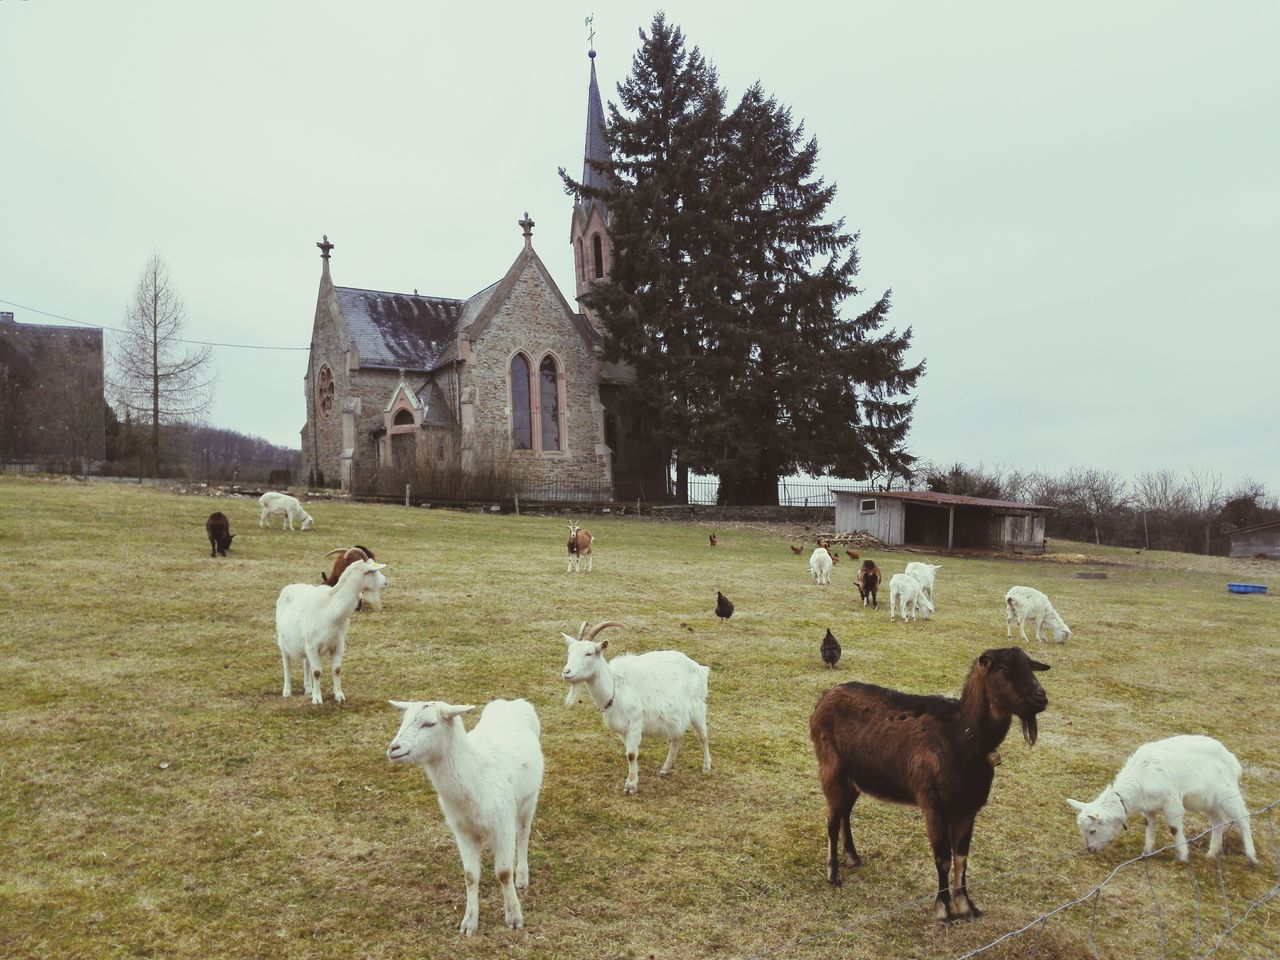 I made some new friends today. Goats Church Countryside